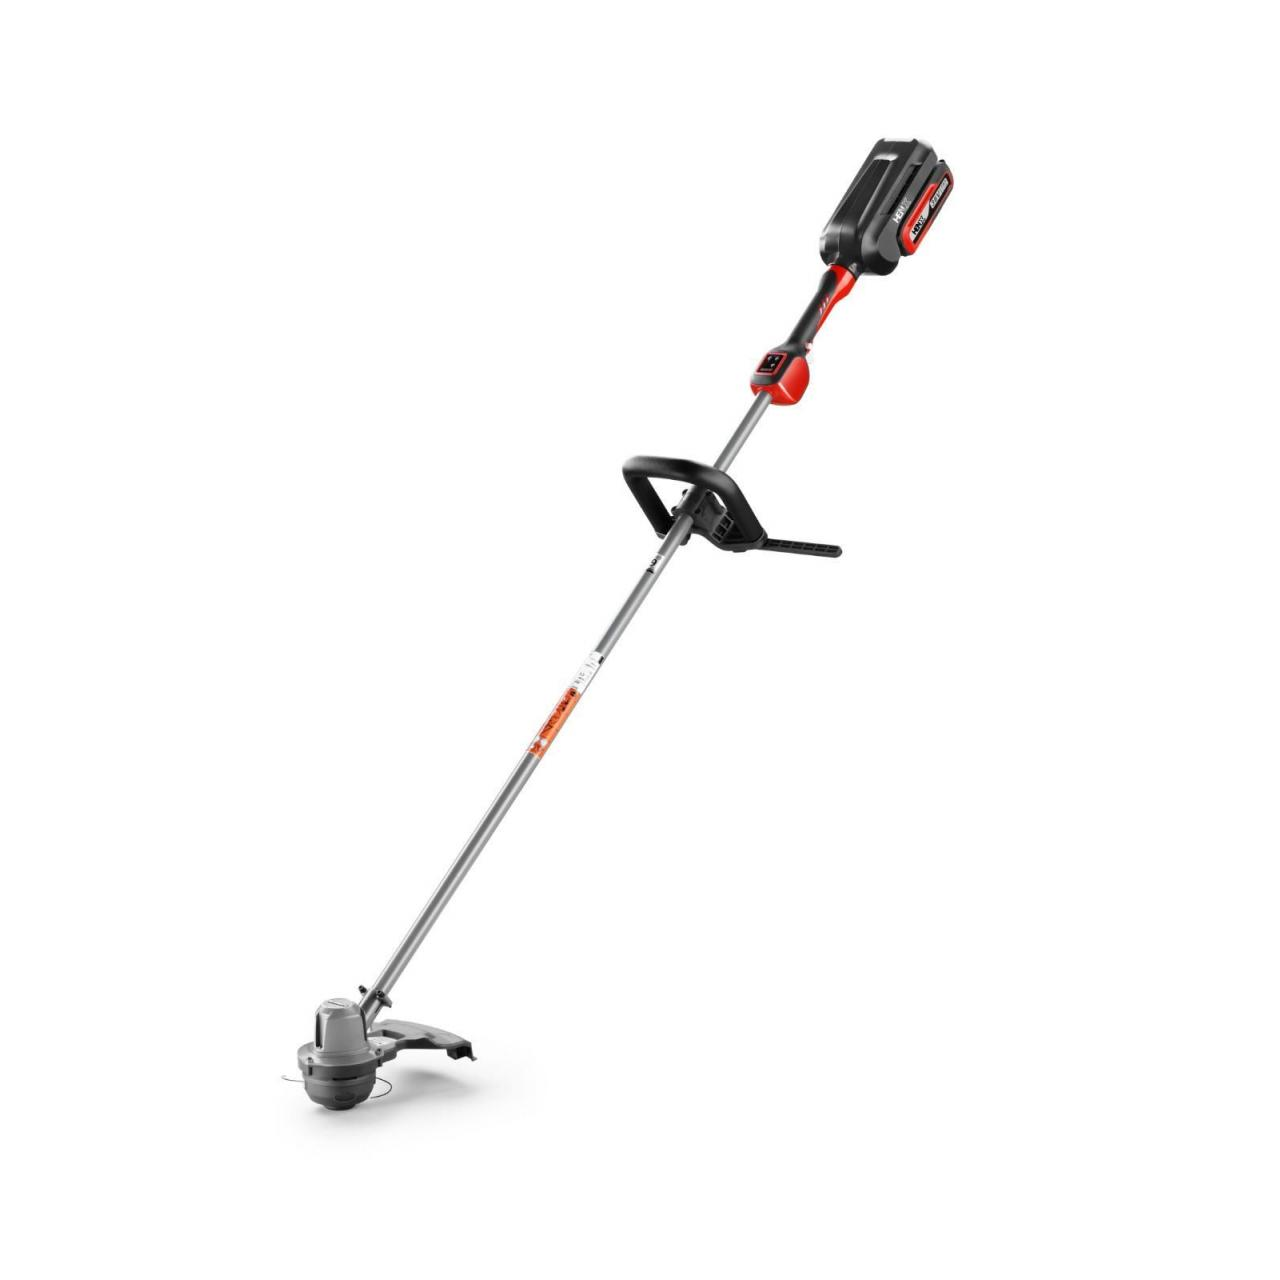 Buy cheap HENX 15-INCH 40V MAX LITHIUM-ION BRUSHLESS STRING TRIMMER from wholesalers